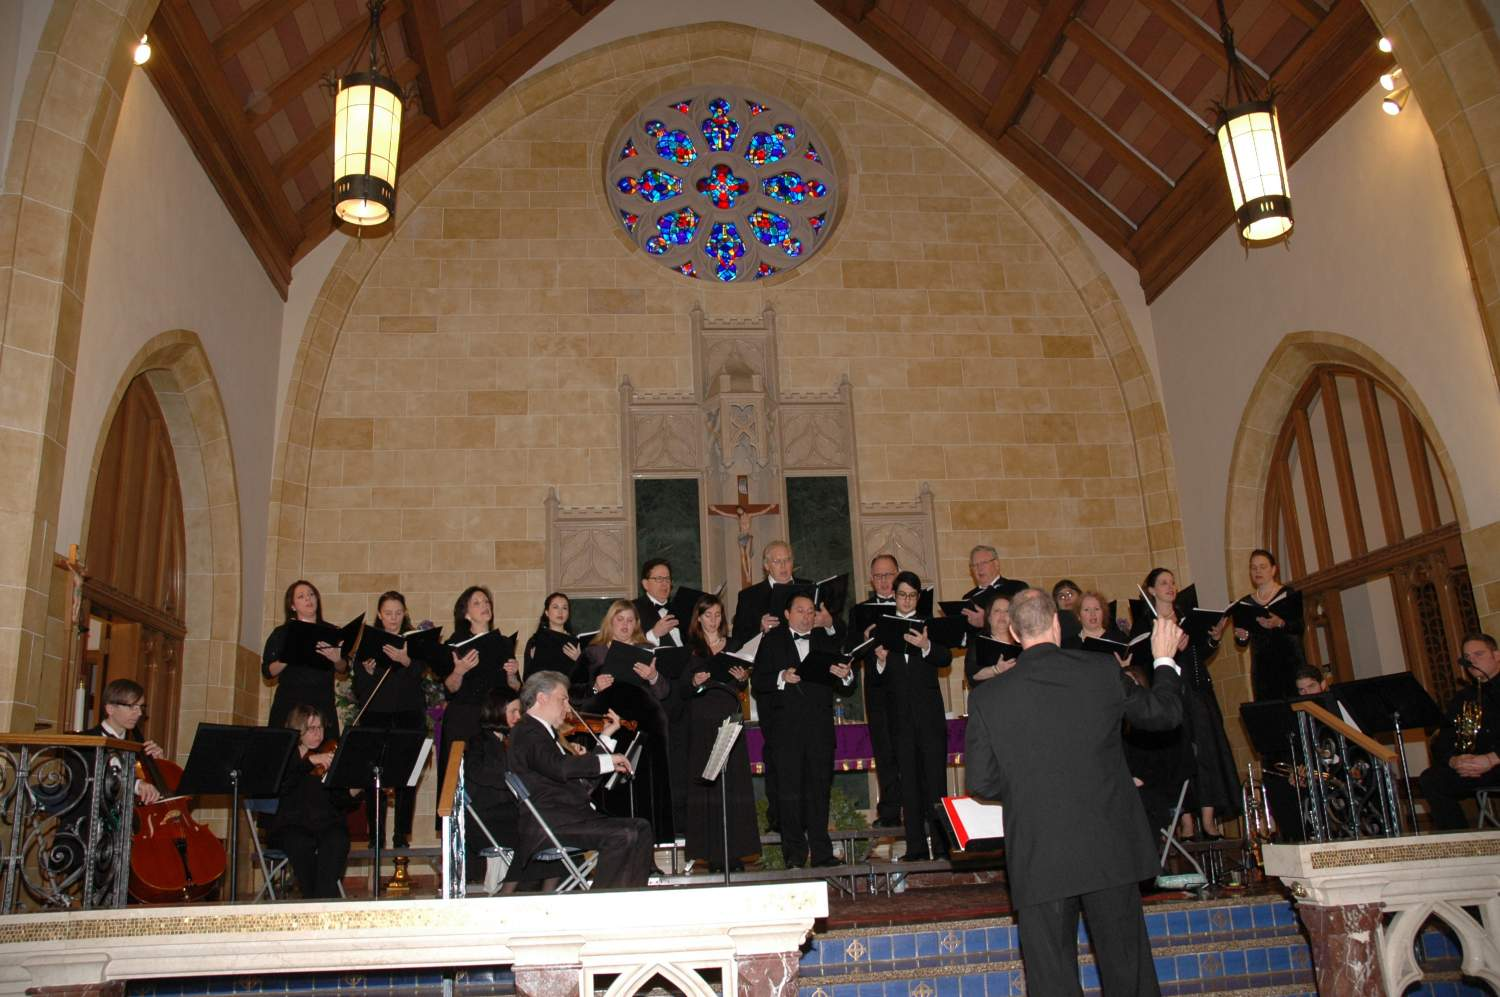 TreasureHouseChoraleChristmasConcert-2013 - 10